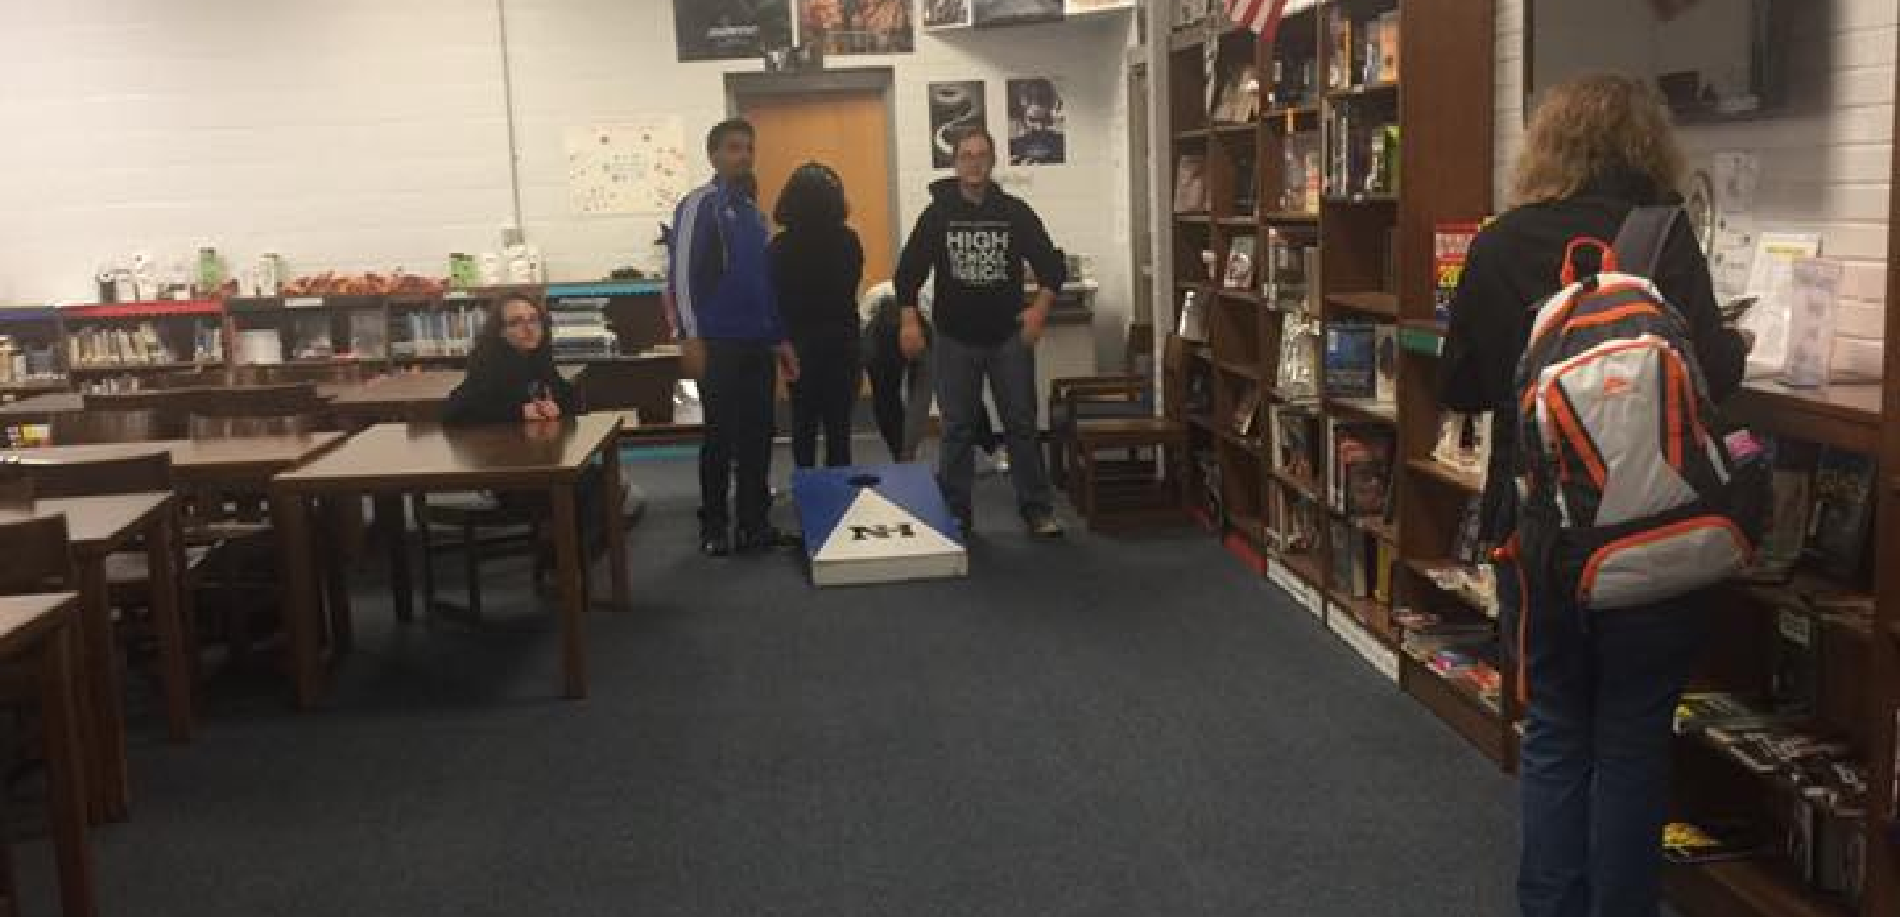 We celebrated Games Week with cornhole!